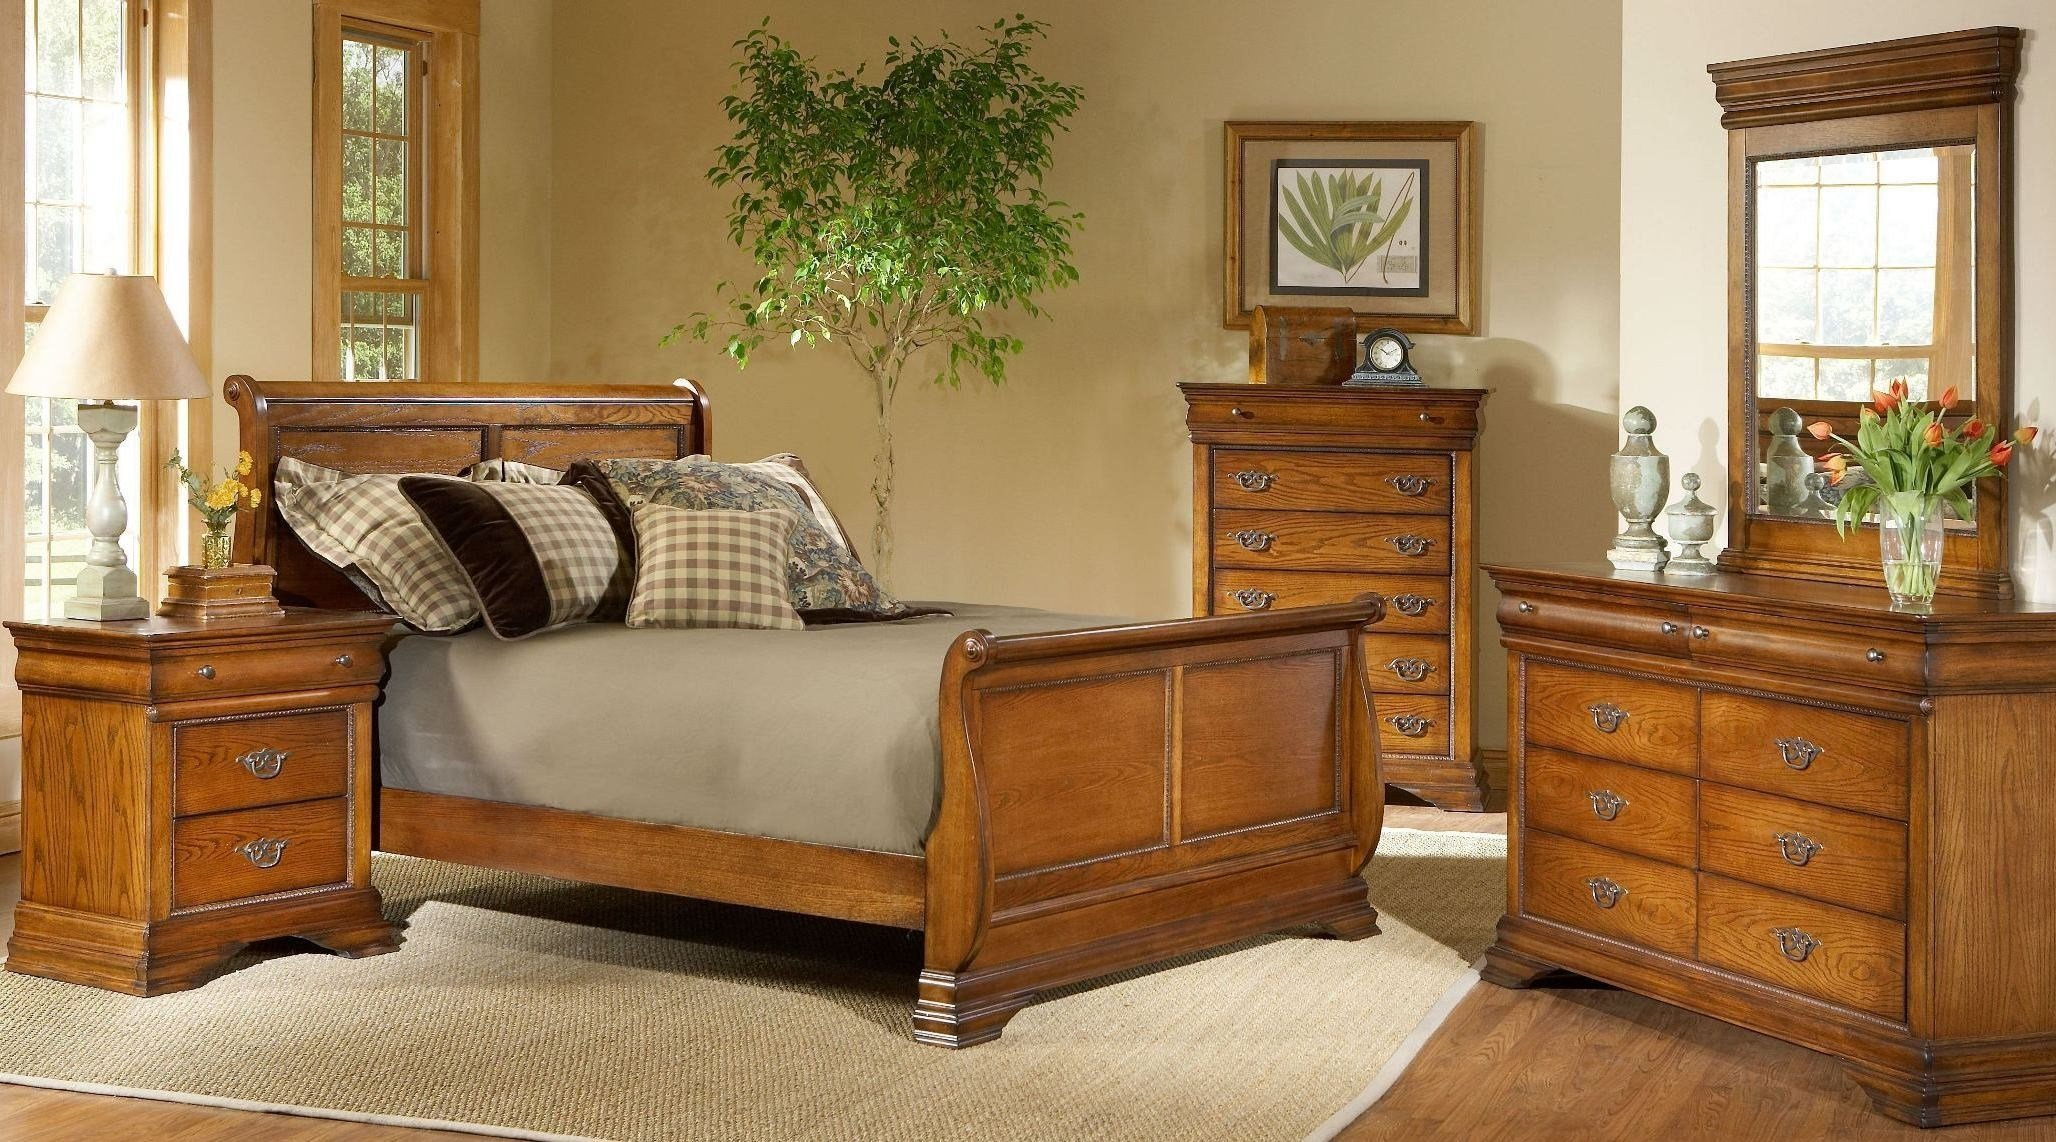 Best Shenandoah American Oak Sleigh Bedroom Set B4850 51H 51F With Pictures